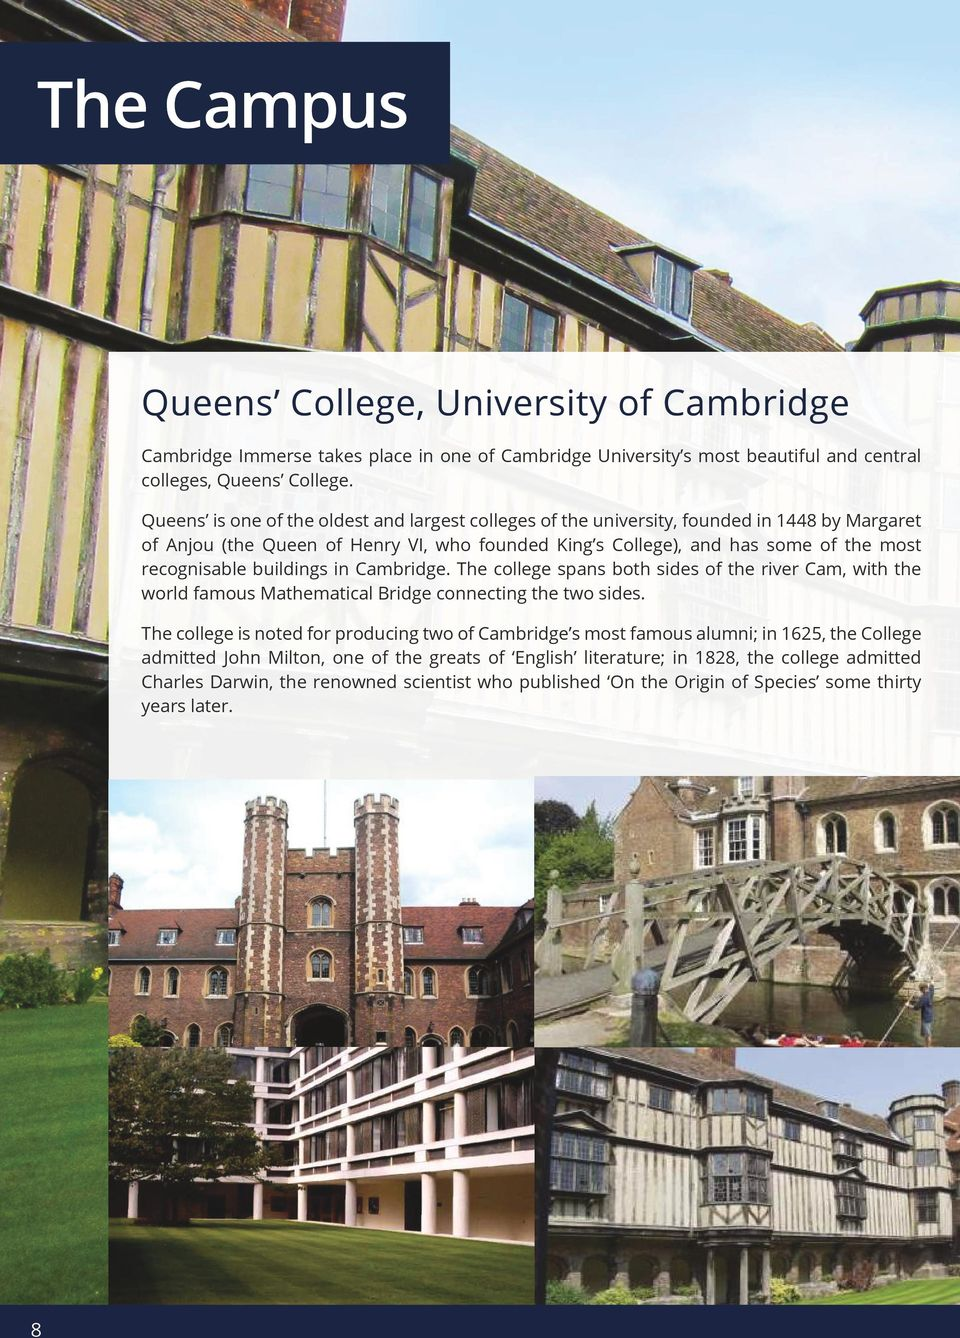 buildings in Cambridge. The college spans both sides of the river Cam, with the world famous Mathematical Bridge connecting the two sides.